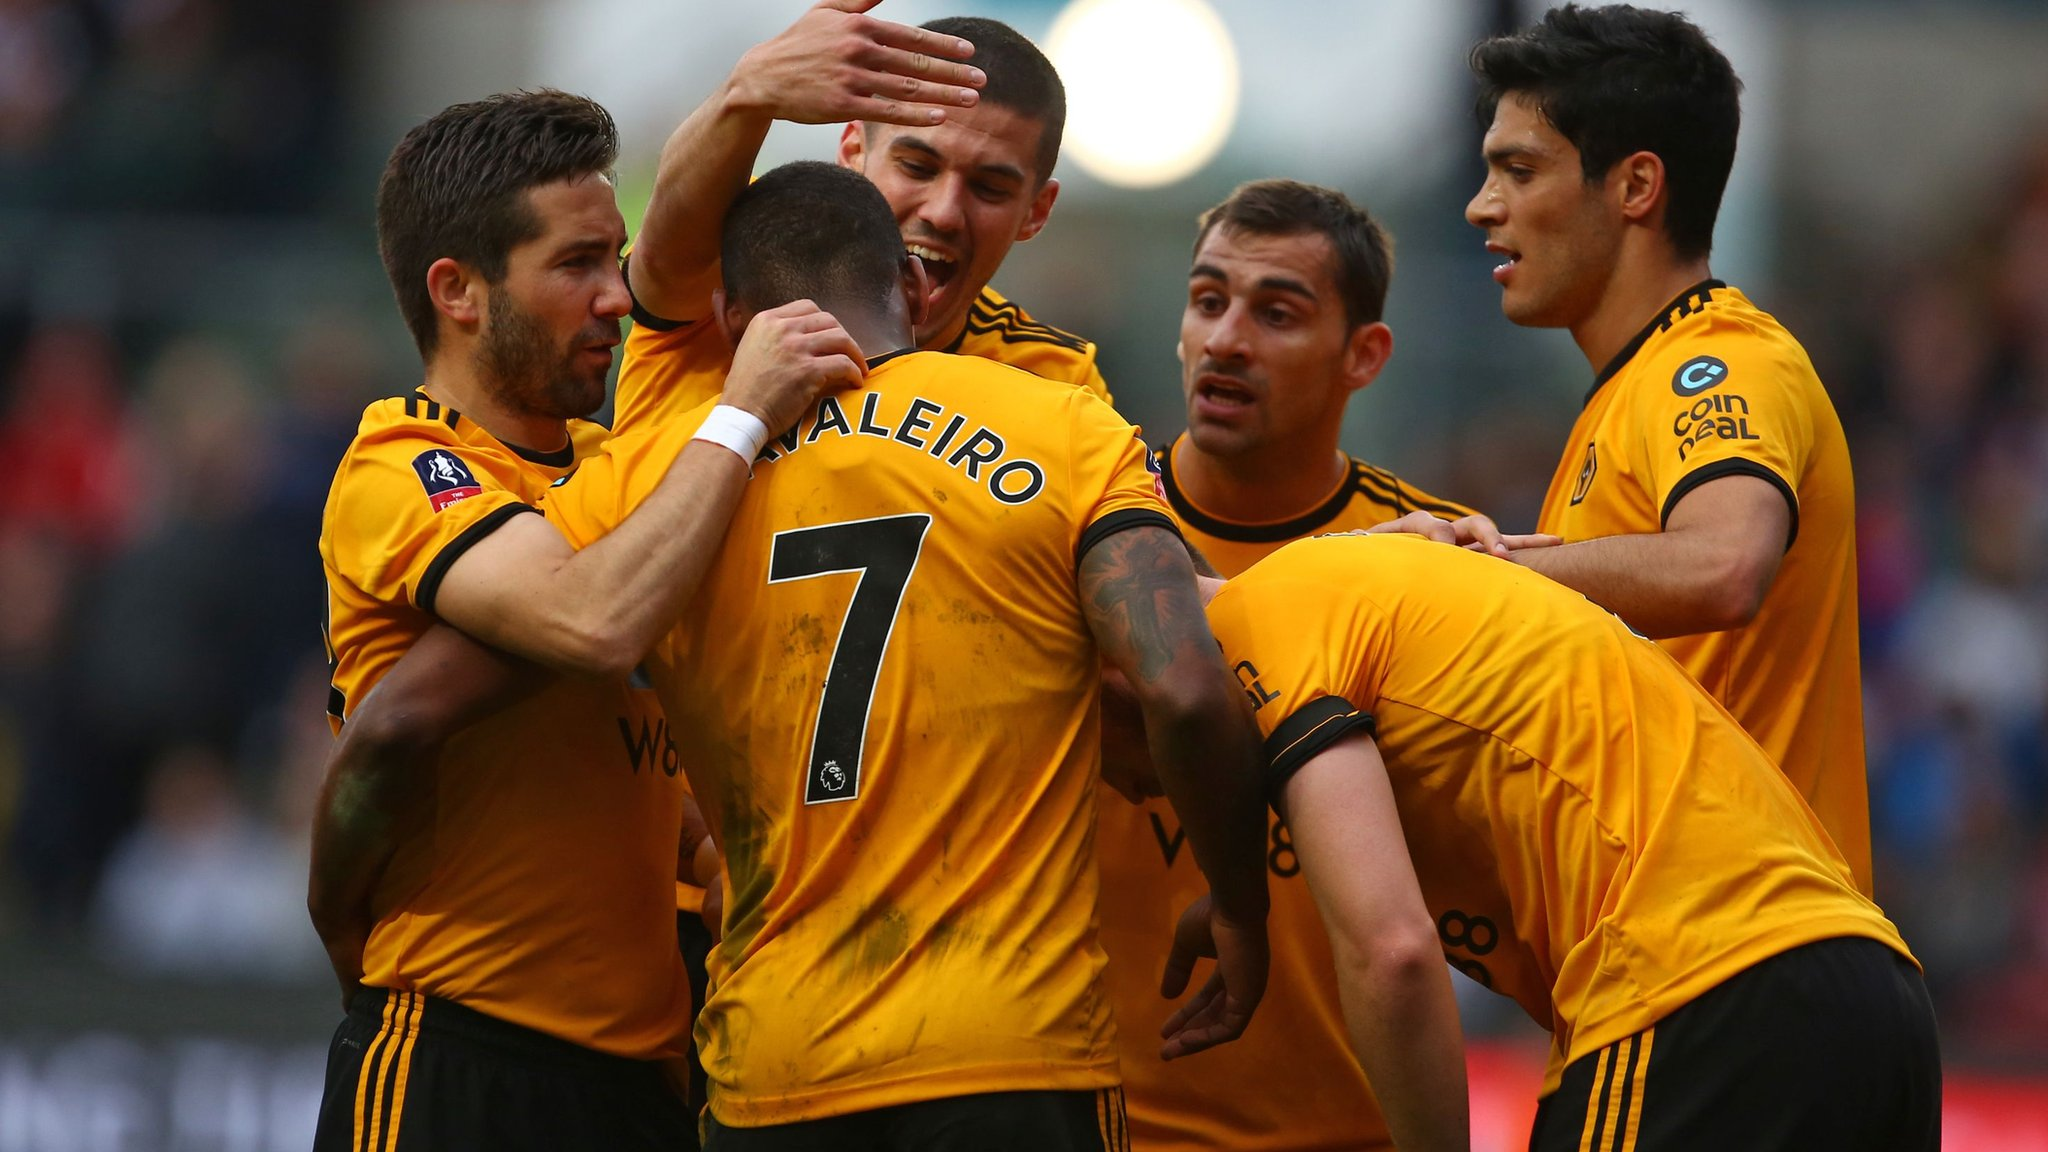 Bristol City 0-1 Wolves: Wanderers reach FA Cup quarter-finals